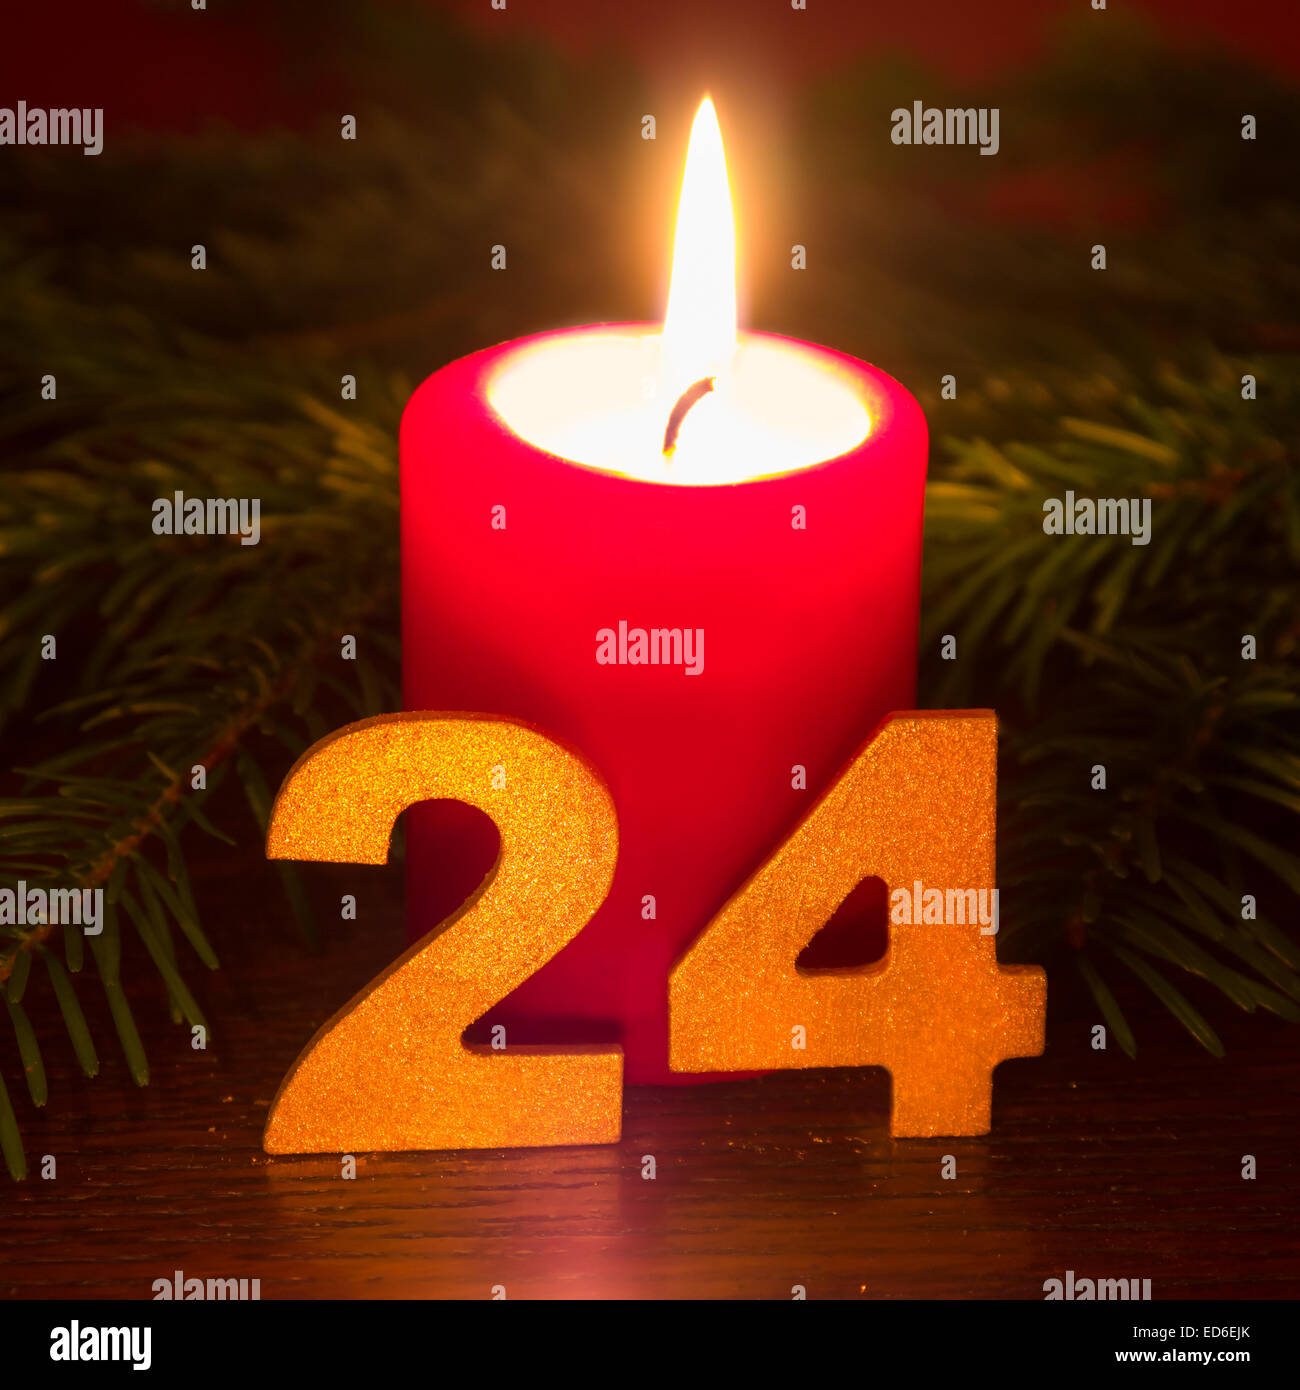 24 december, red candle - Stock Image